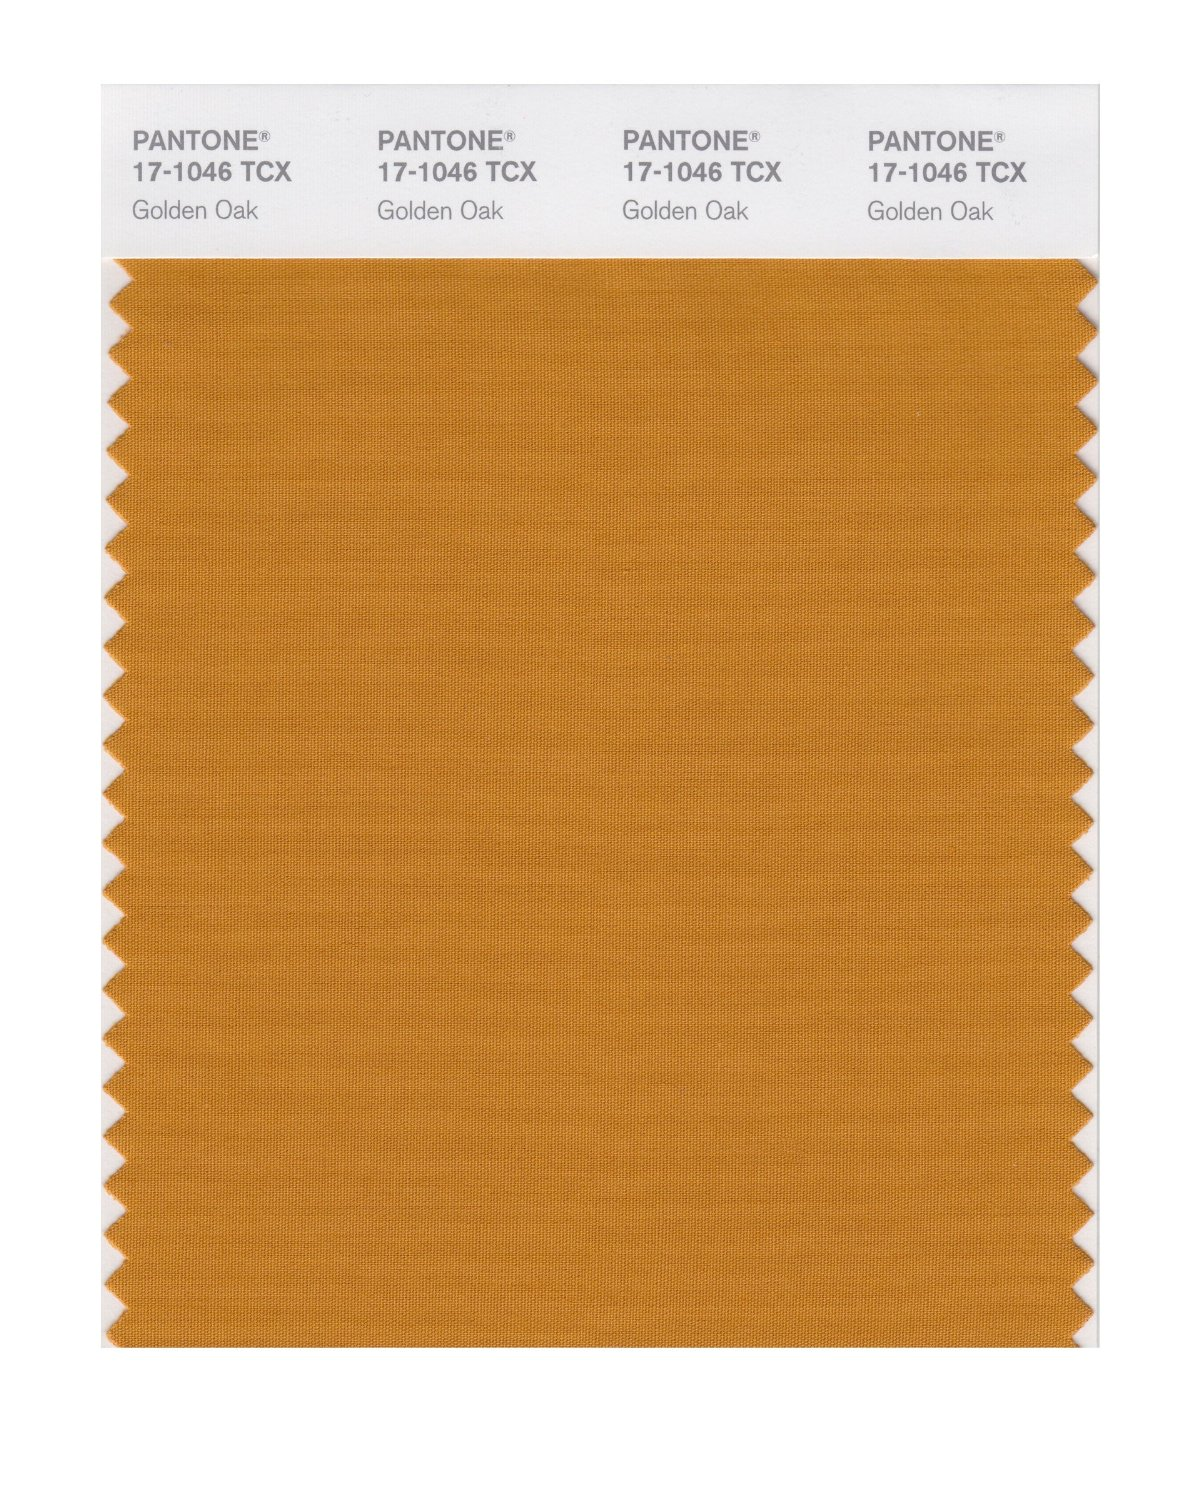 Pantone Smart Swatch 17-1046 Golden Oak